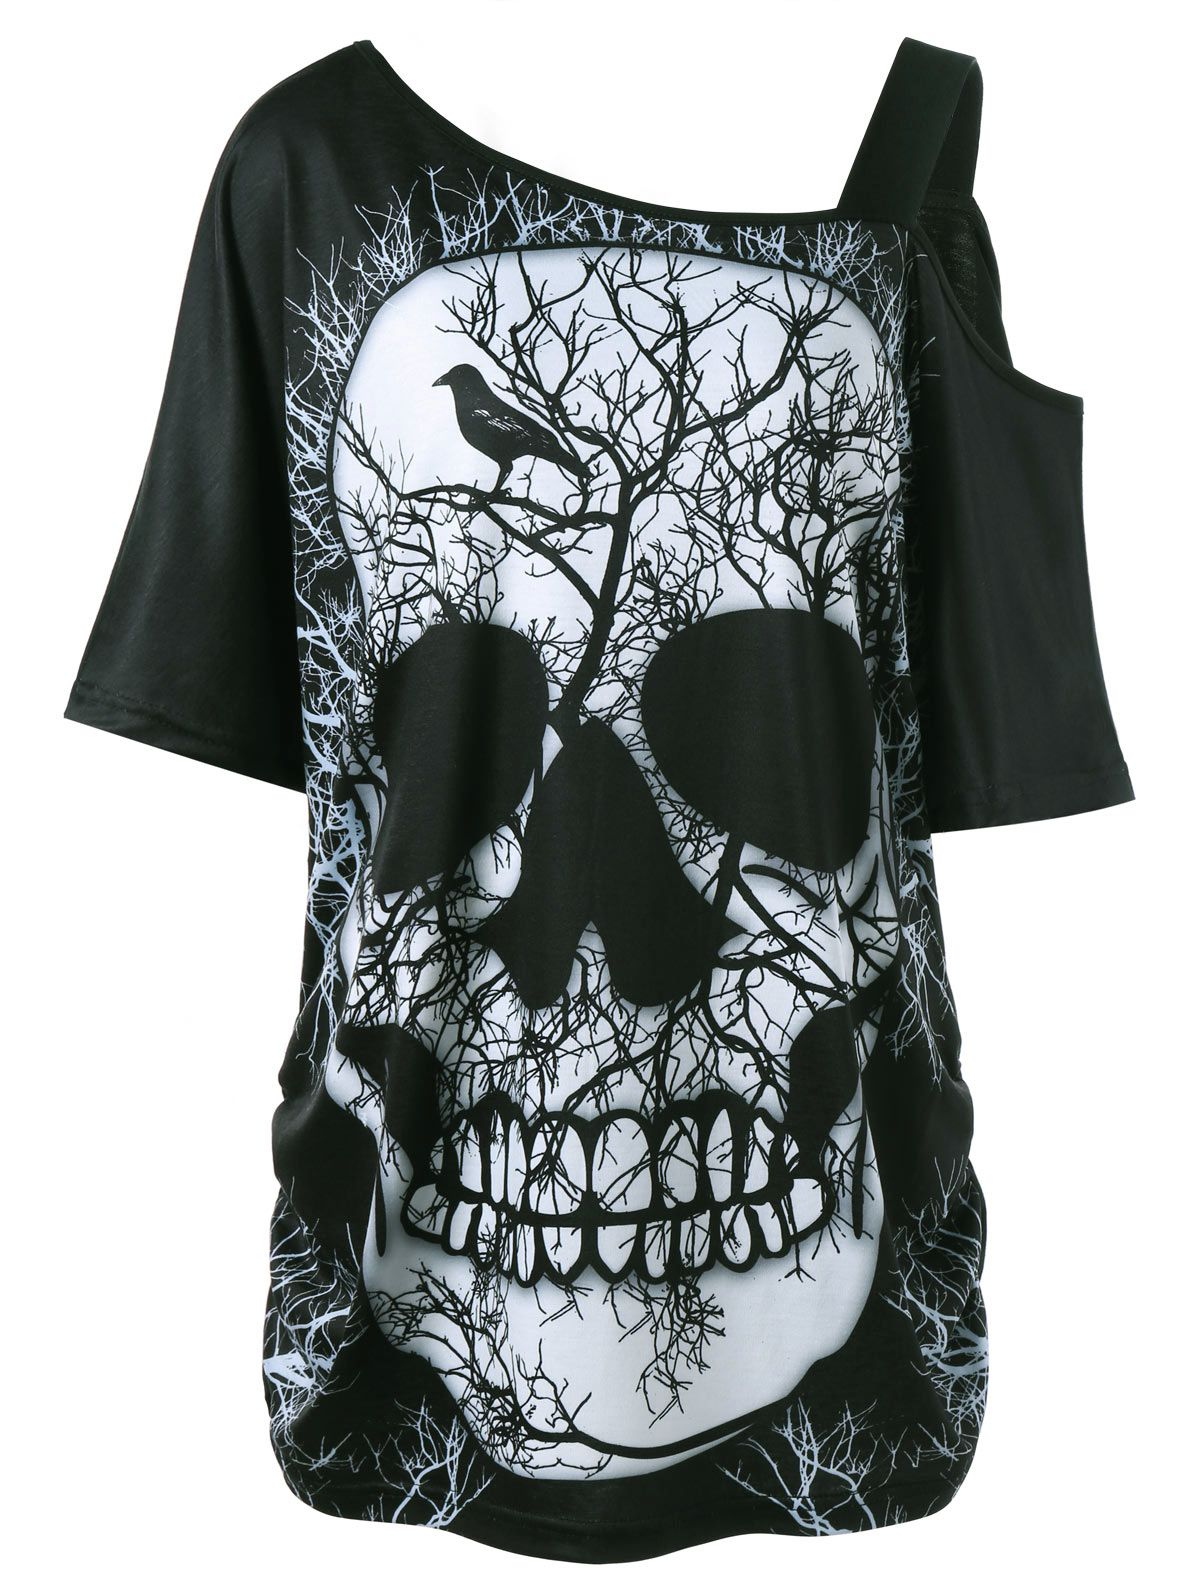 Plus size skew collar skull tshirt black clothes and costumes